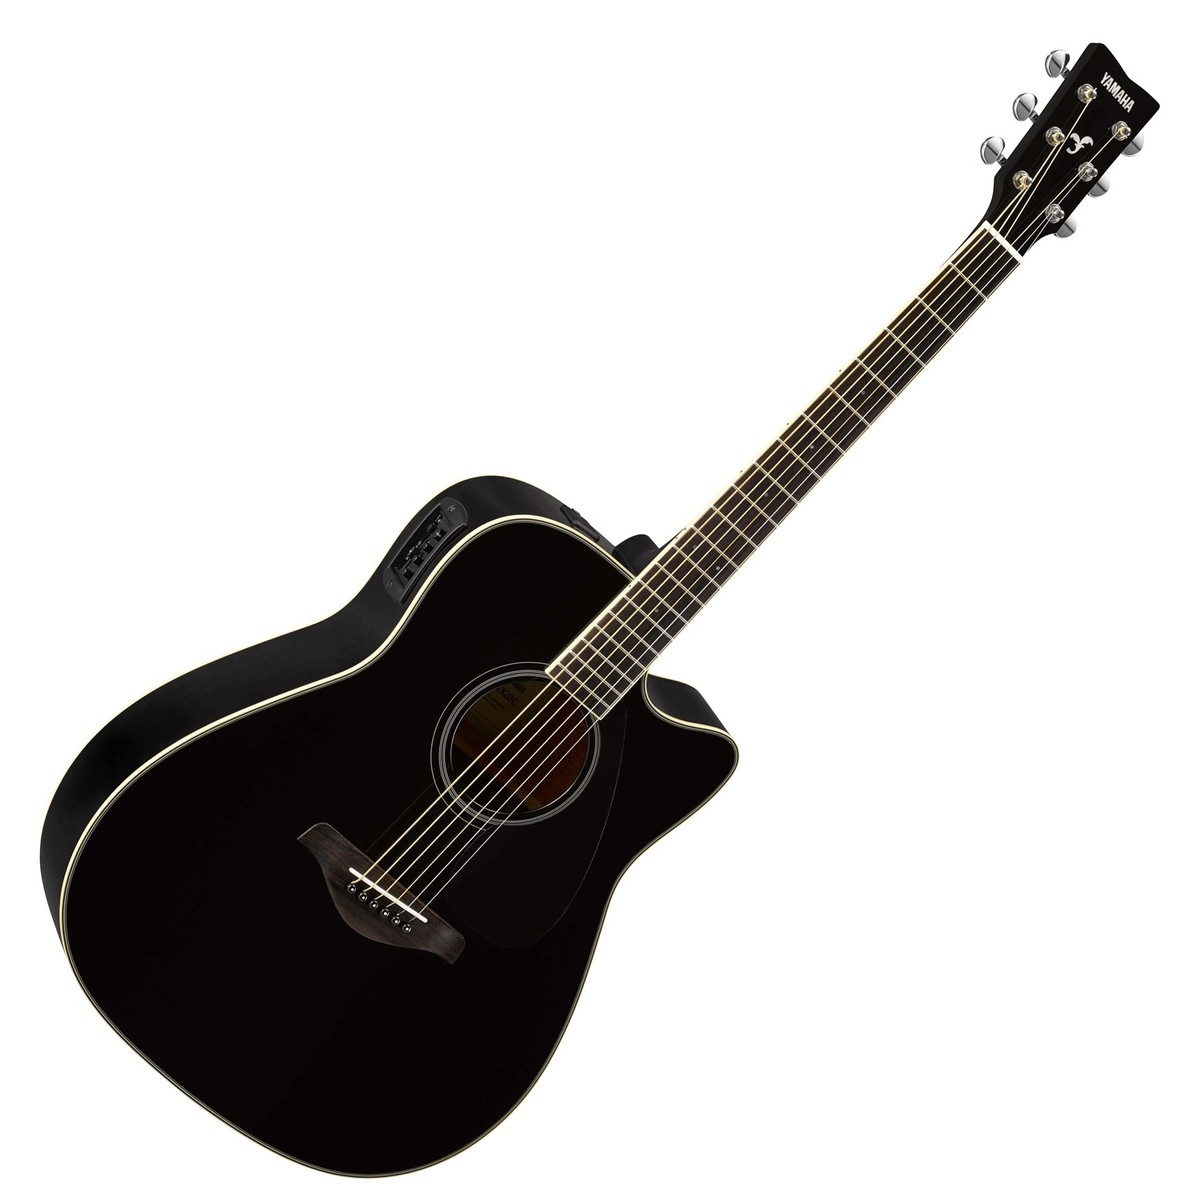 yamaha fgx820c electro acoustique guitare noir. Black Bedroom Furniture Sets. Home Design Ideas